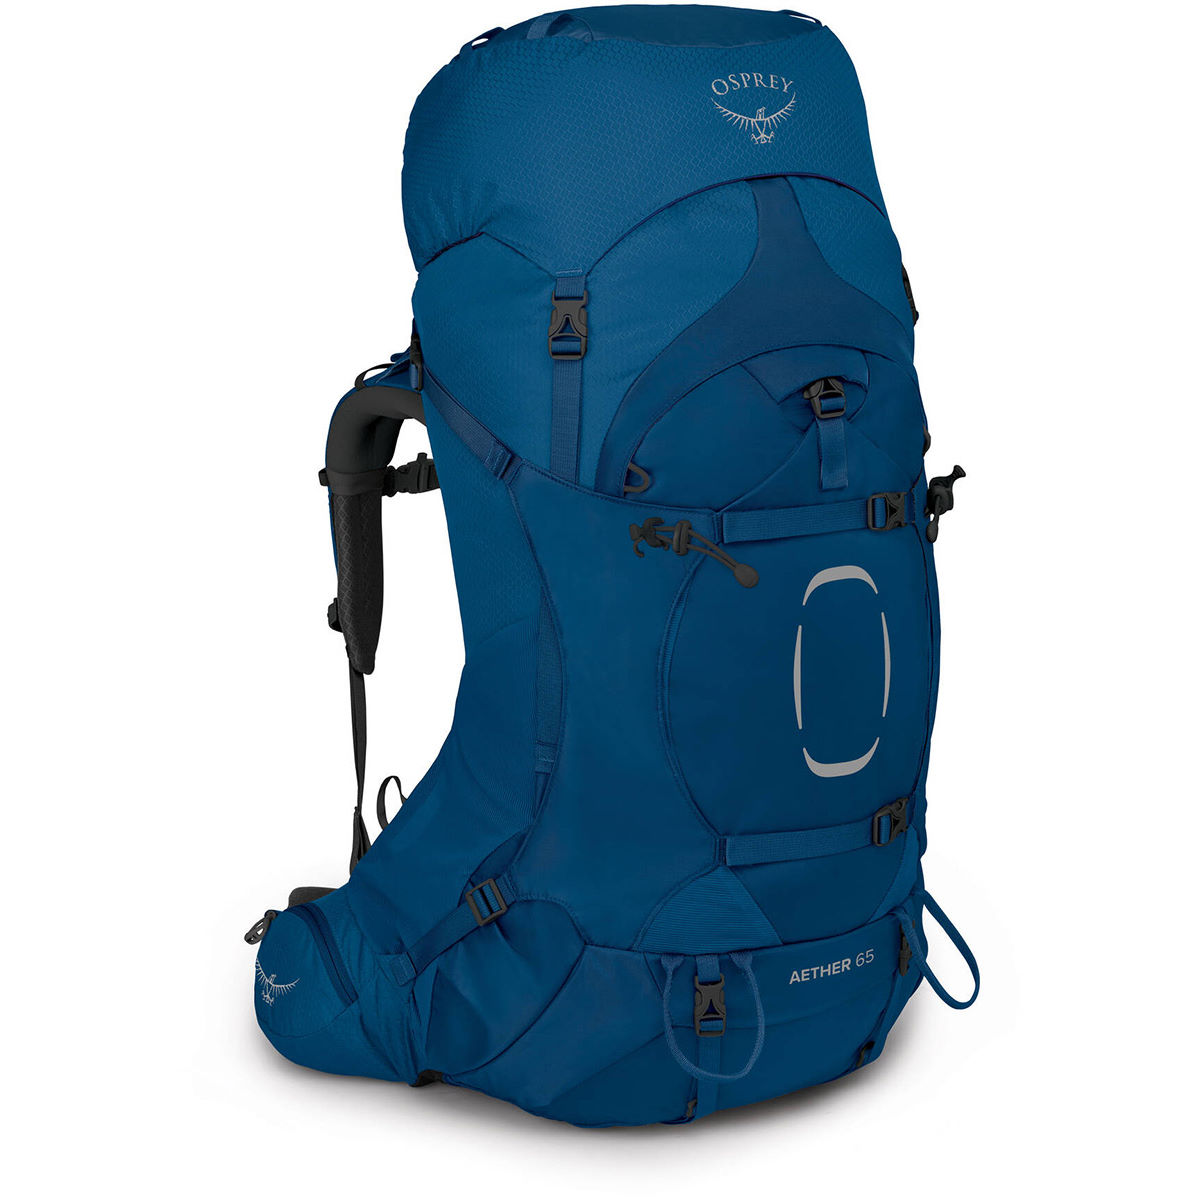 Osprey Aether 65 Backpack - Small/medium Deep Water Blue  Hiking Bags